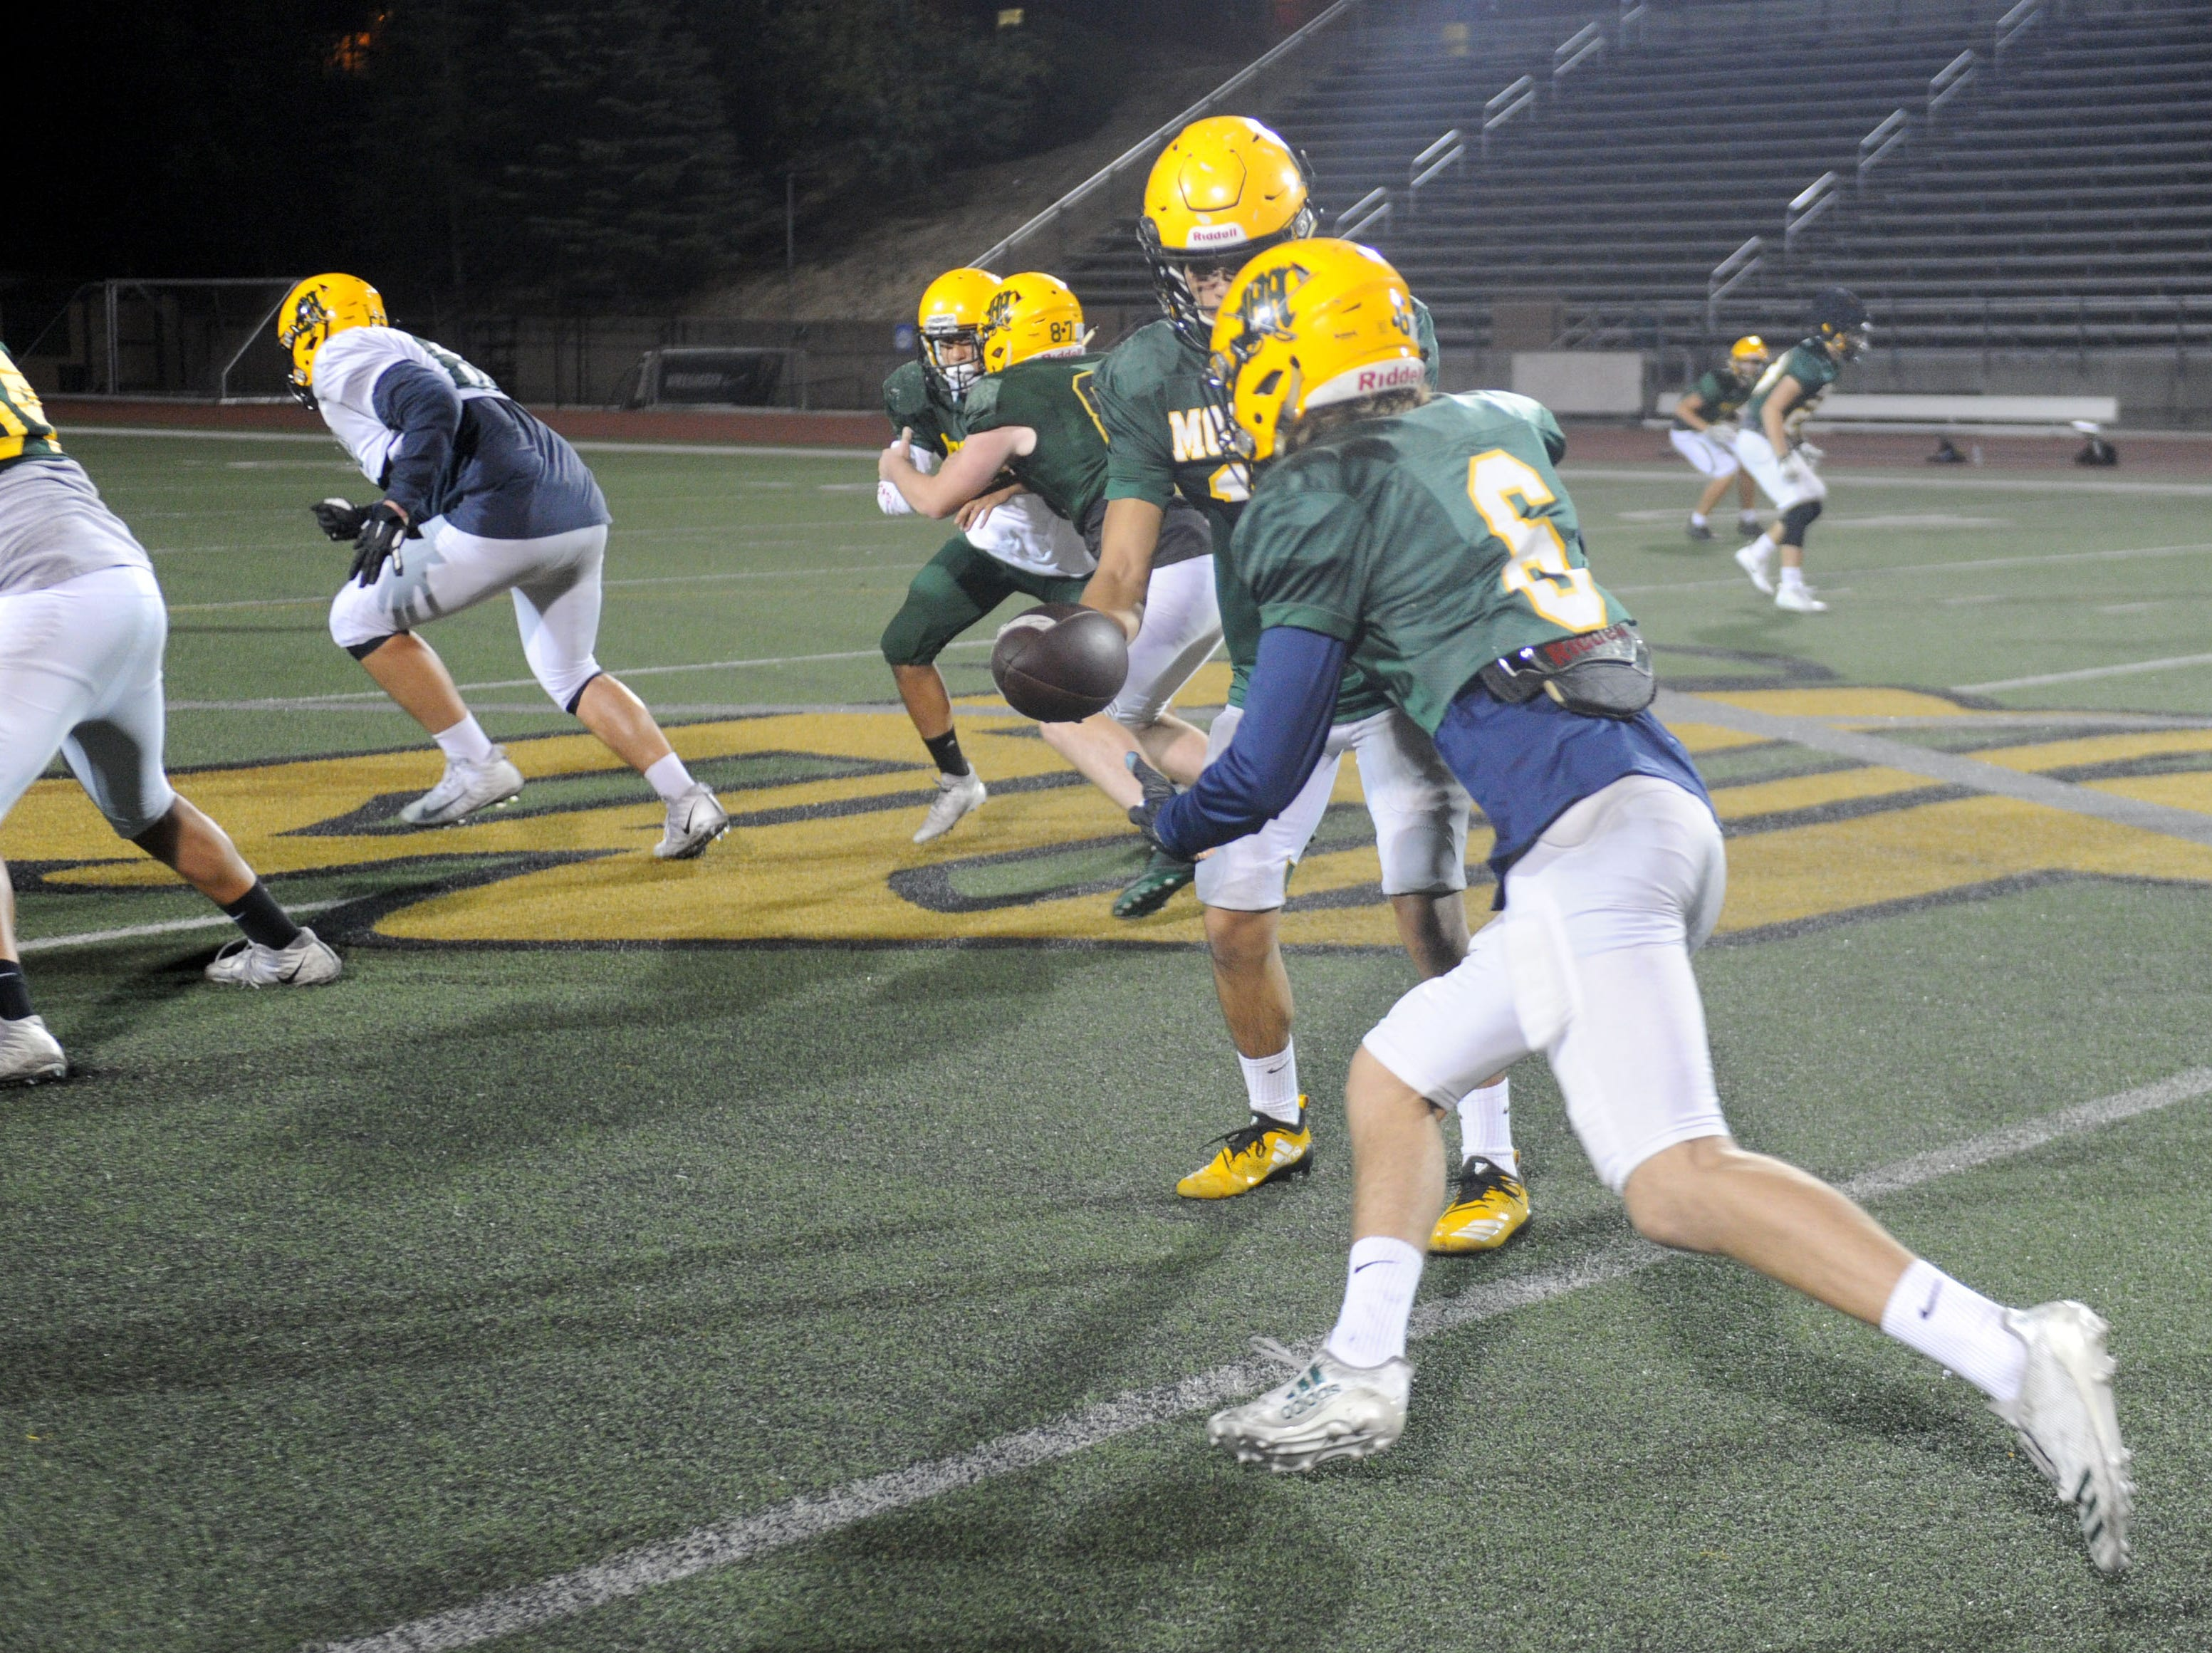 Ian Meier takes a handoff during Moorpark's practice Wednesday. The Musketeers host Sierra Canyon in a Division 3 quarterfinal game Friday night.